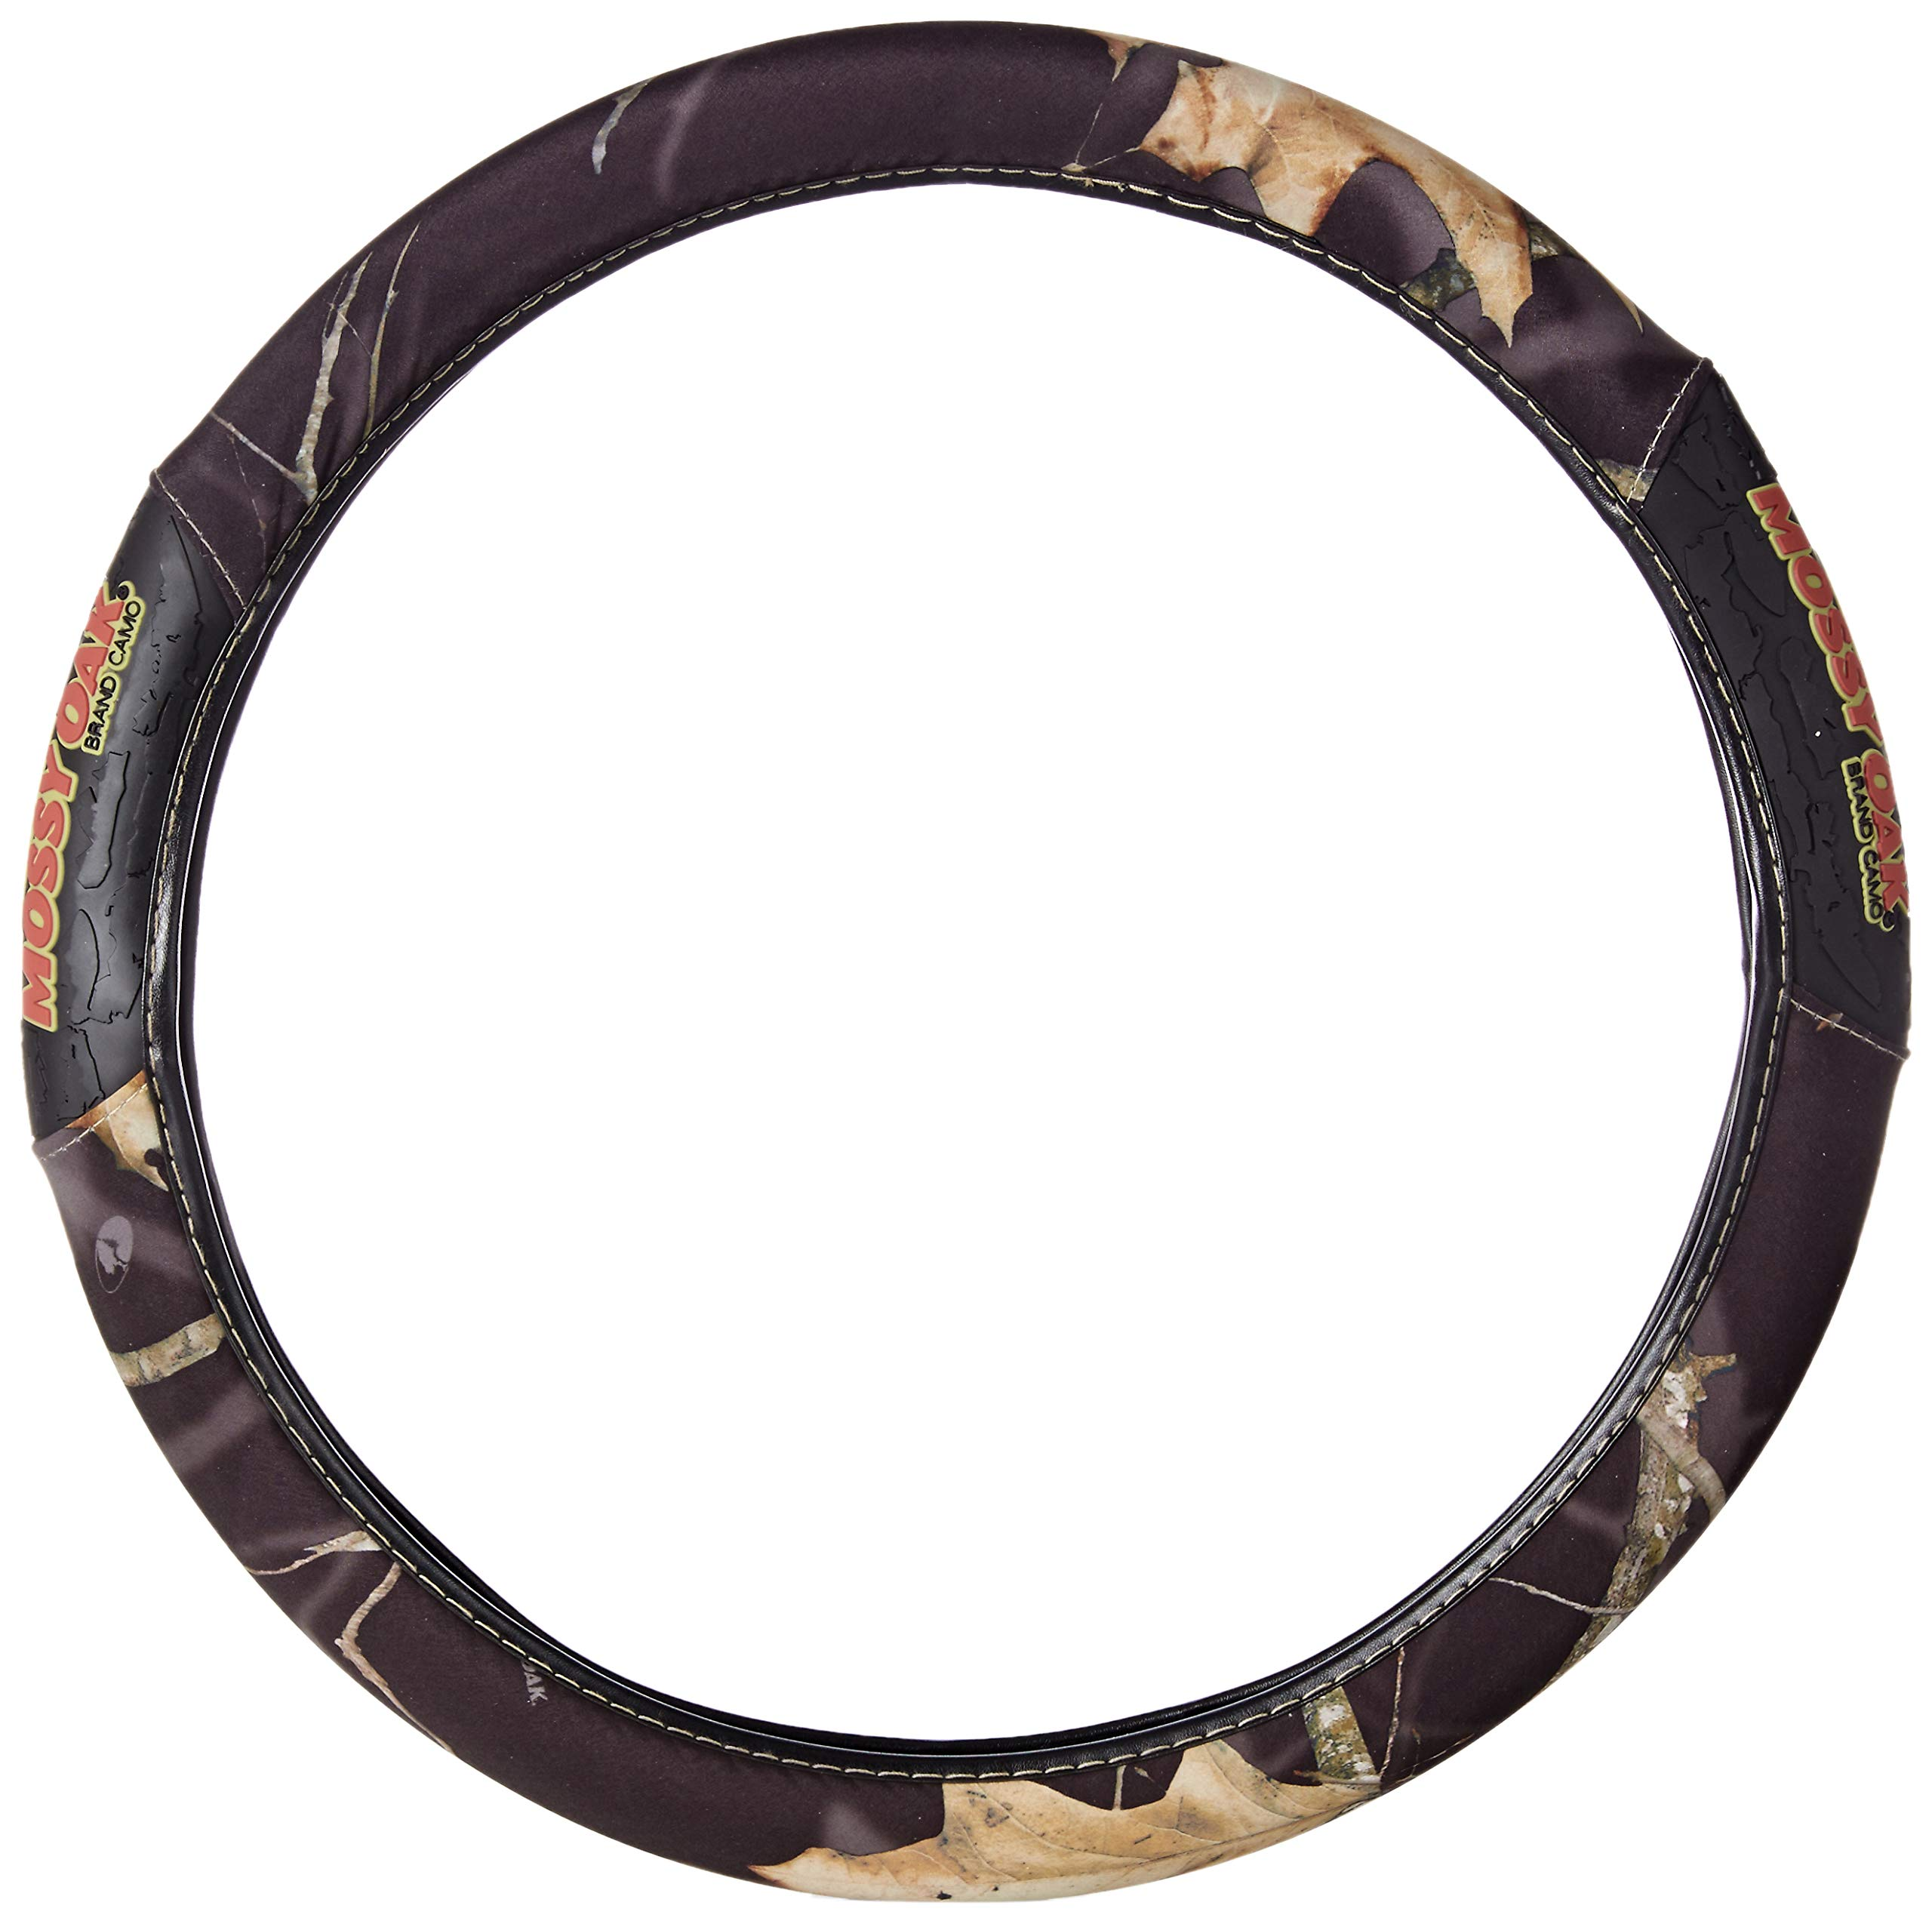 Mossy Oak Camo Steering Wheel Cover, Country